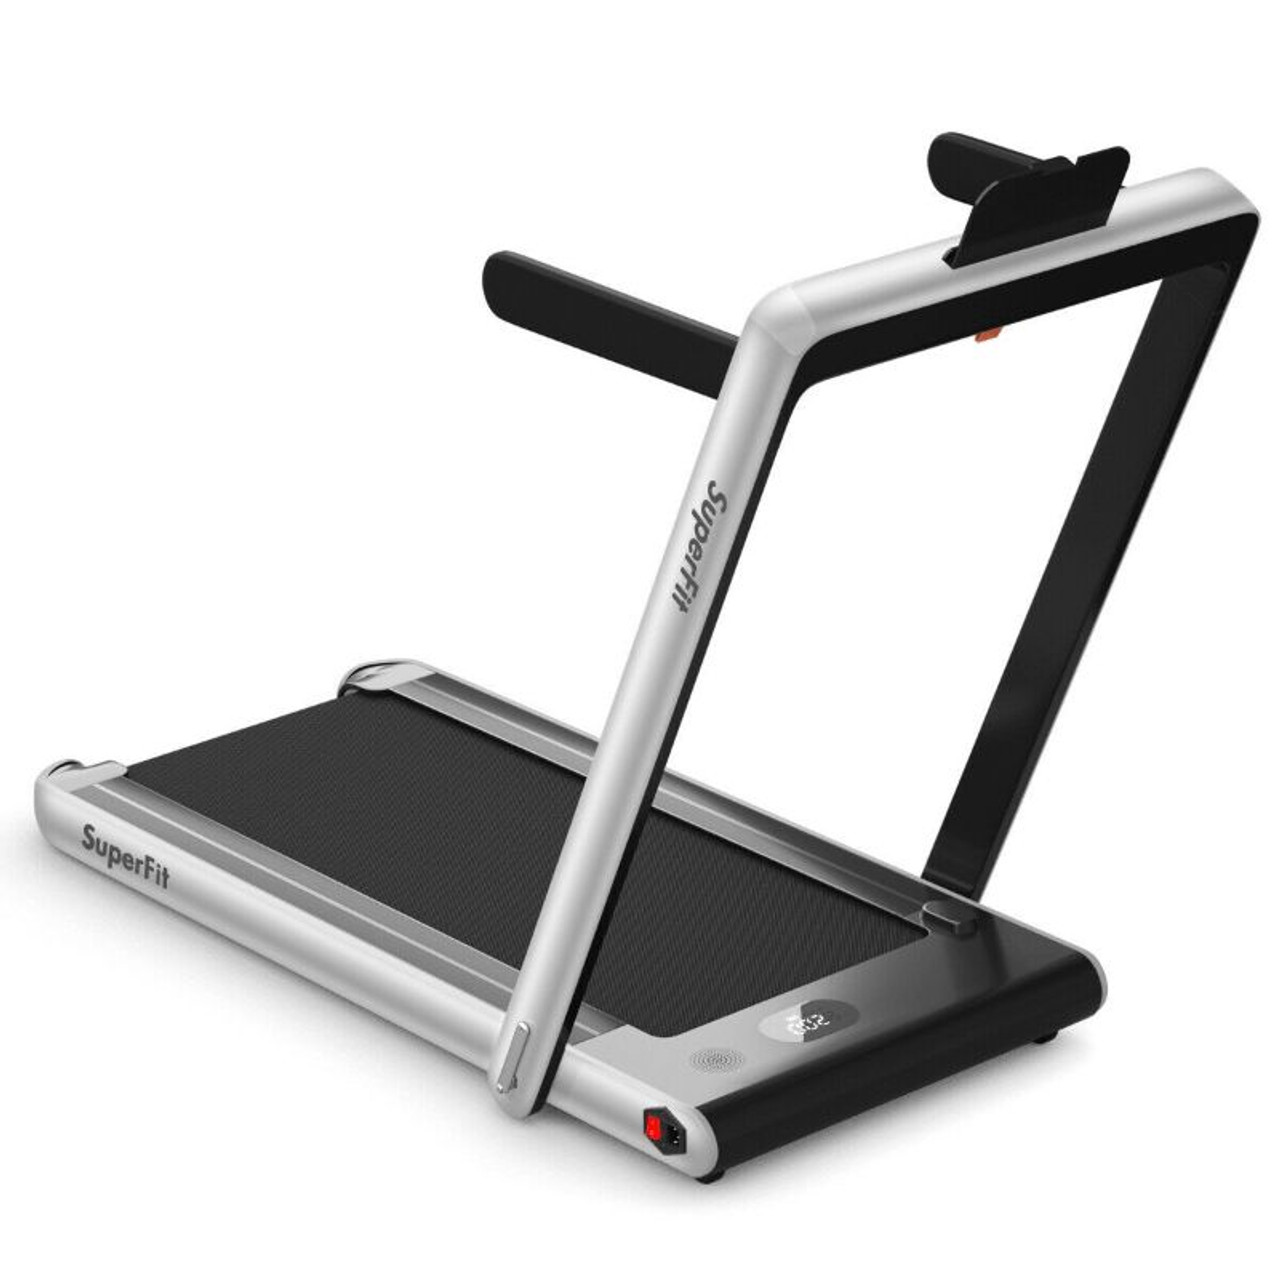 2 in 1 Folding Treadmill Dual Display with Bluetooth Speaker